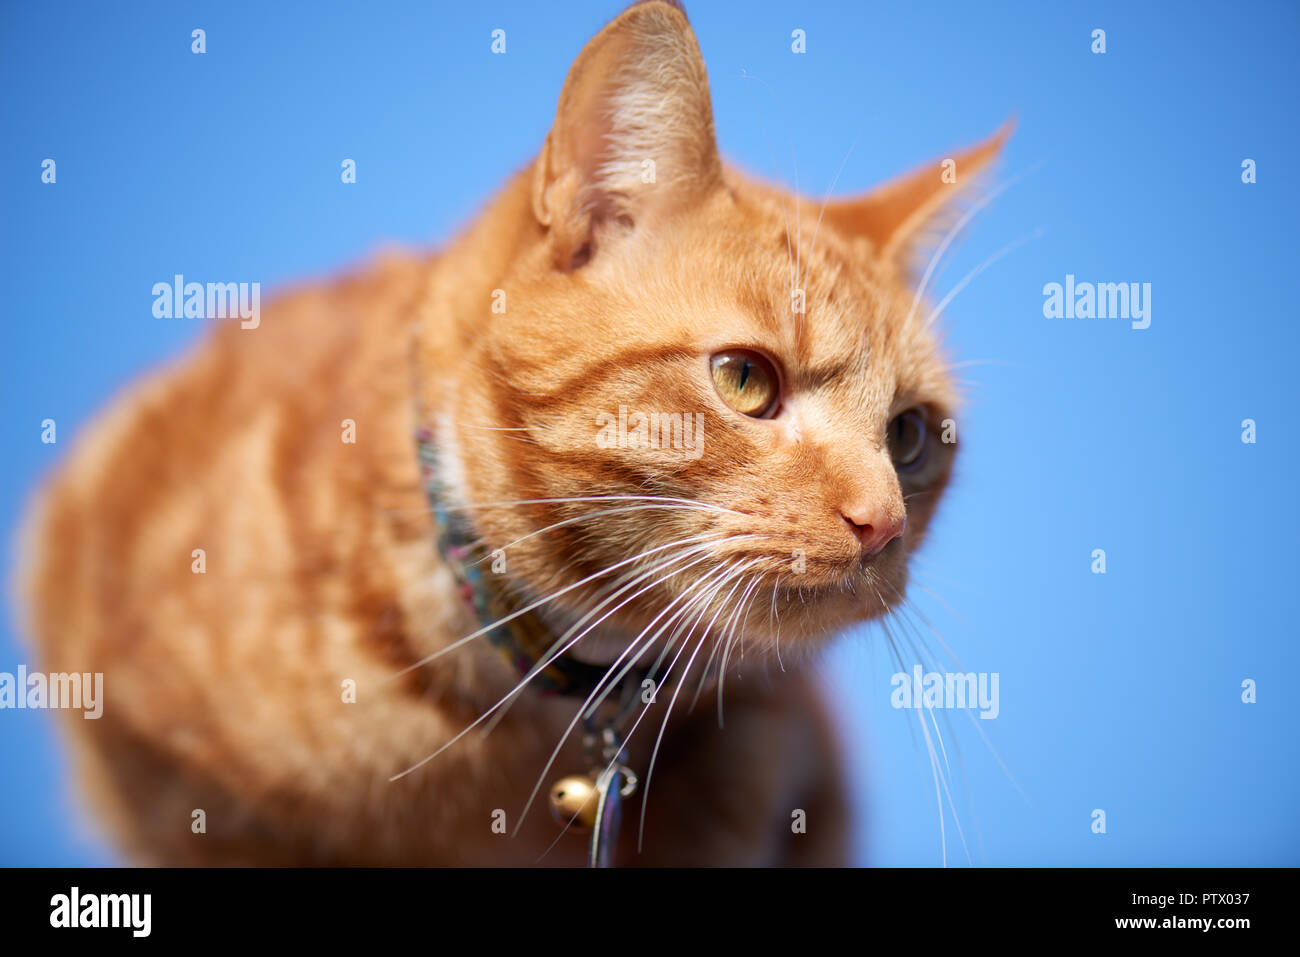 Young ginger red tabby cat close portrait photographed from below isolated against a blue sky background. Stock Photo